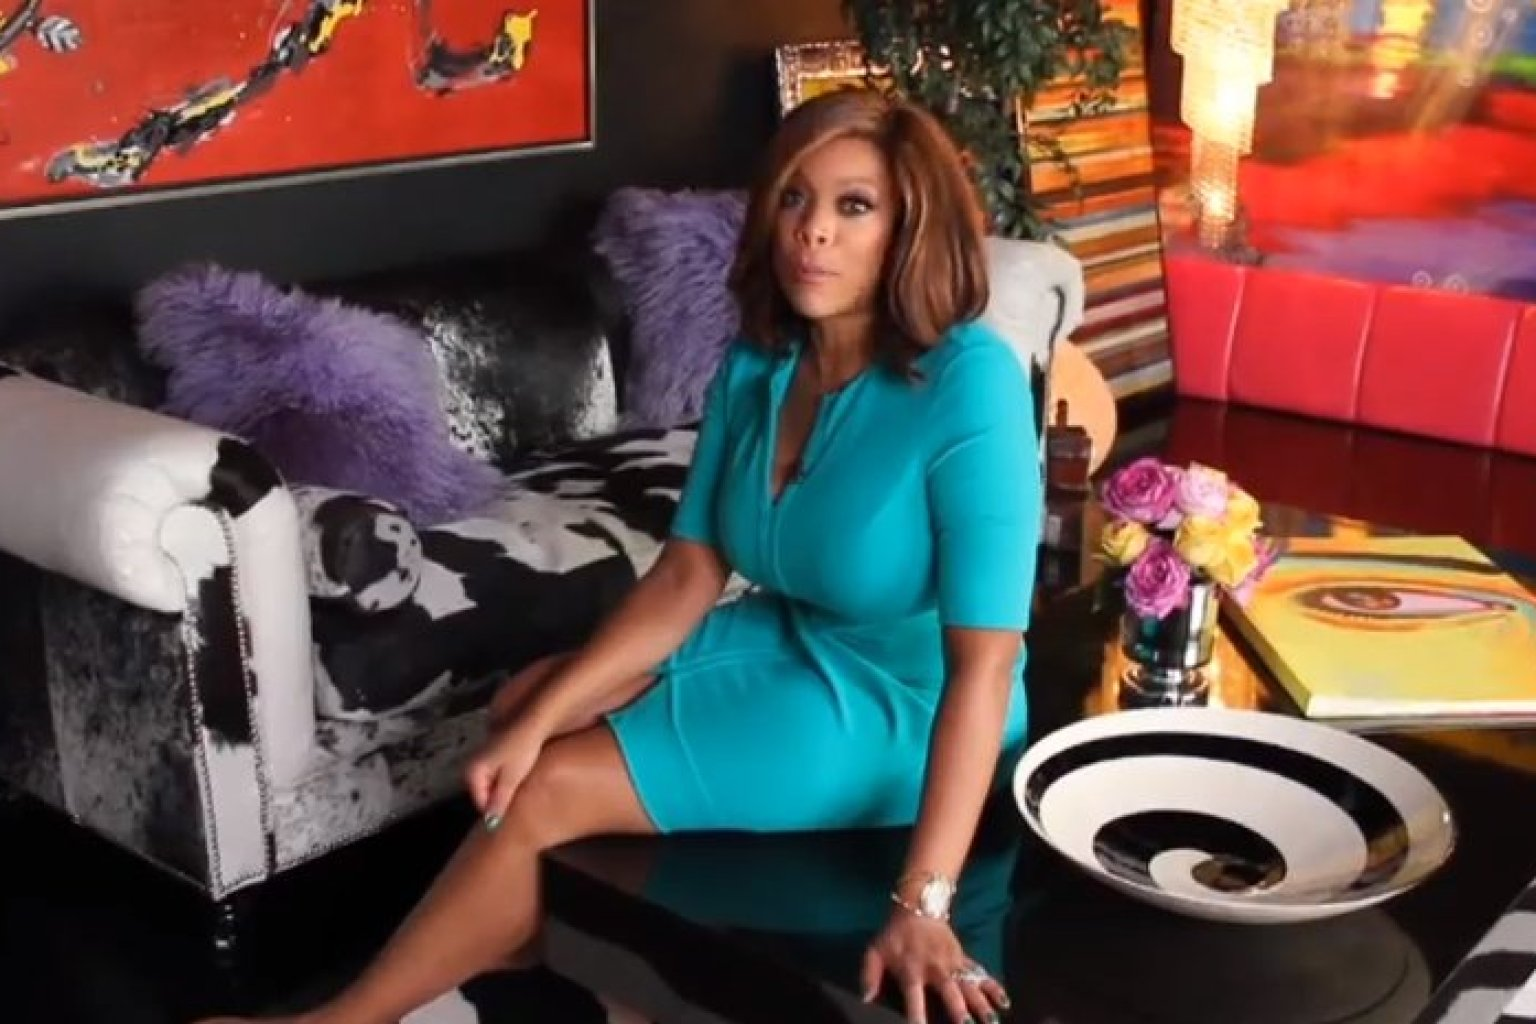 Wendy Williams39 Home Has A Room With A 39Tree Of Life39 And Lots Of